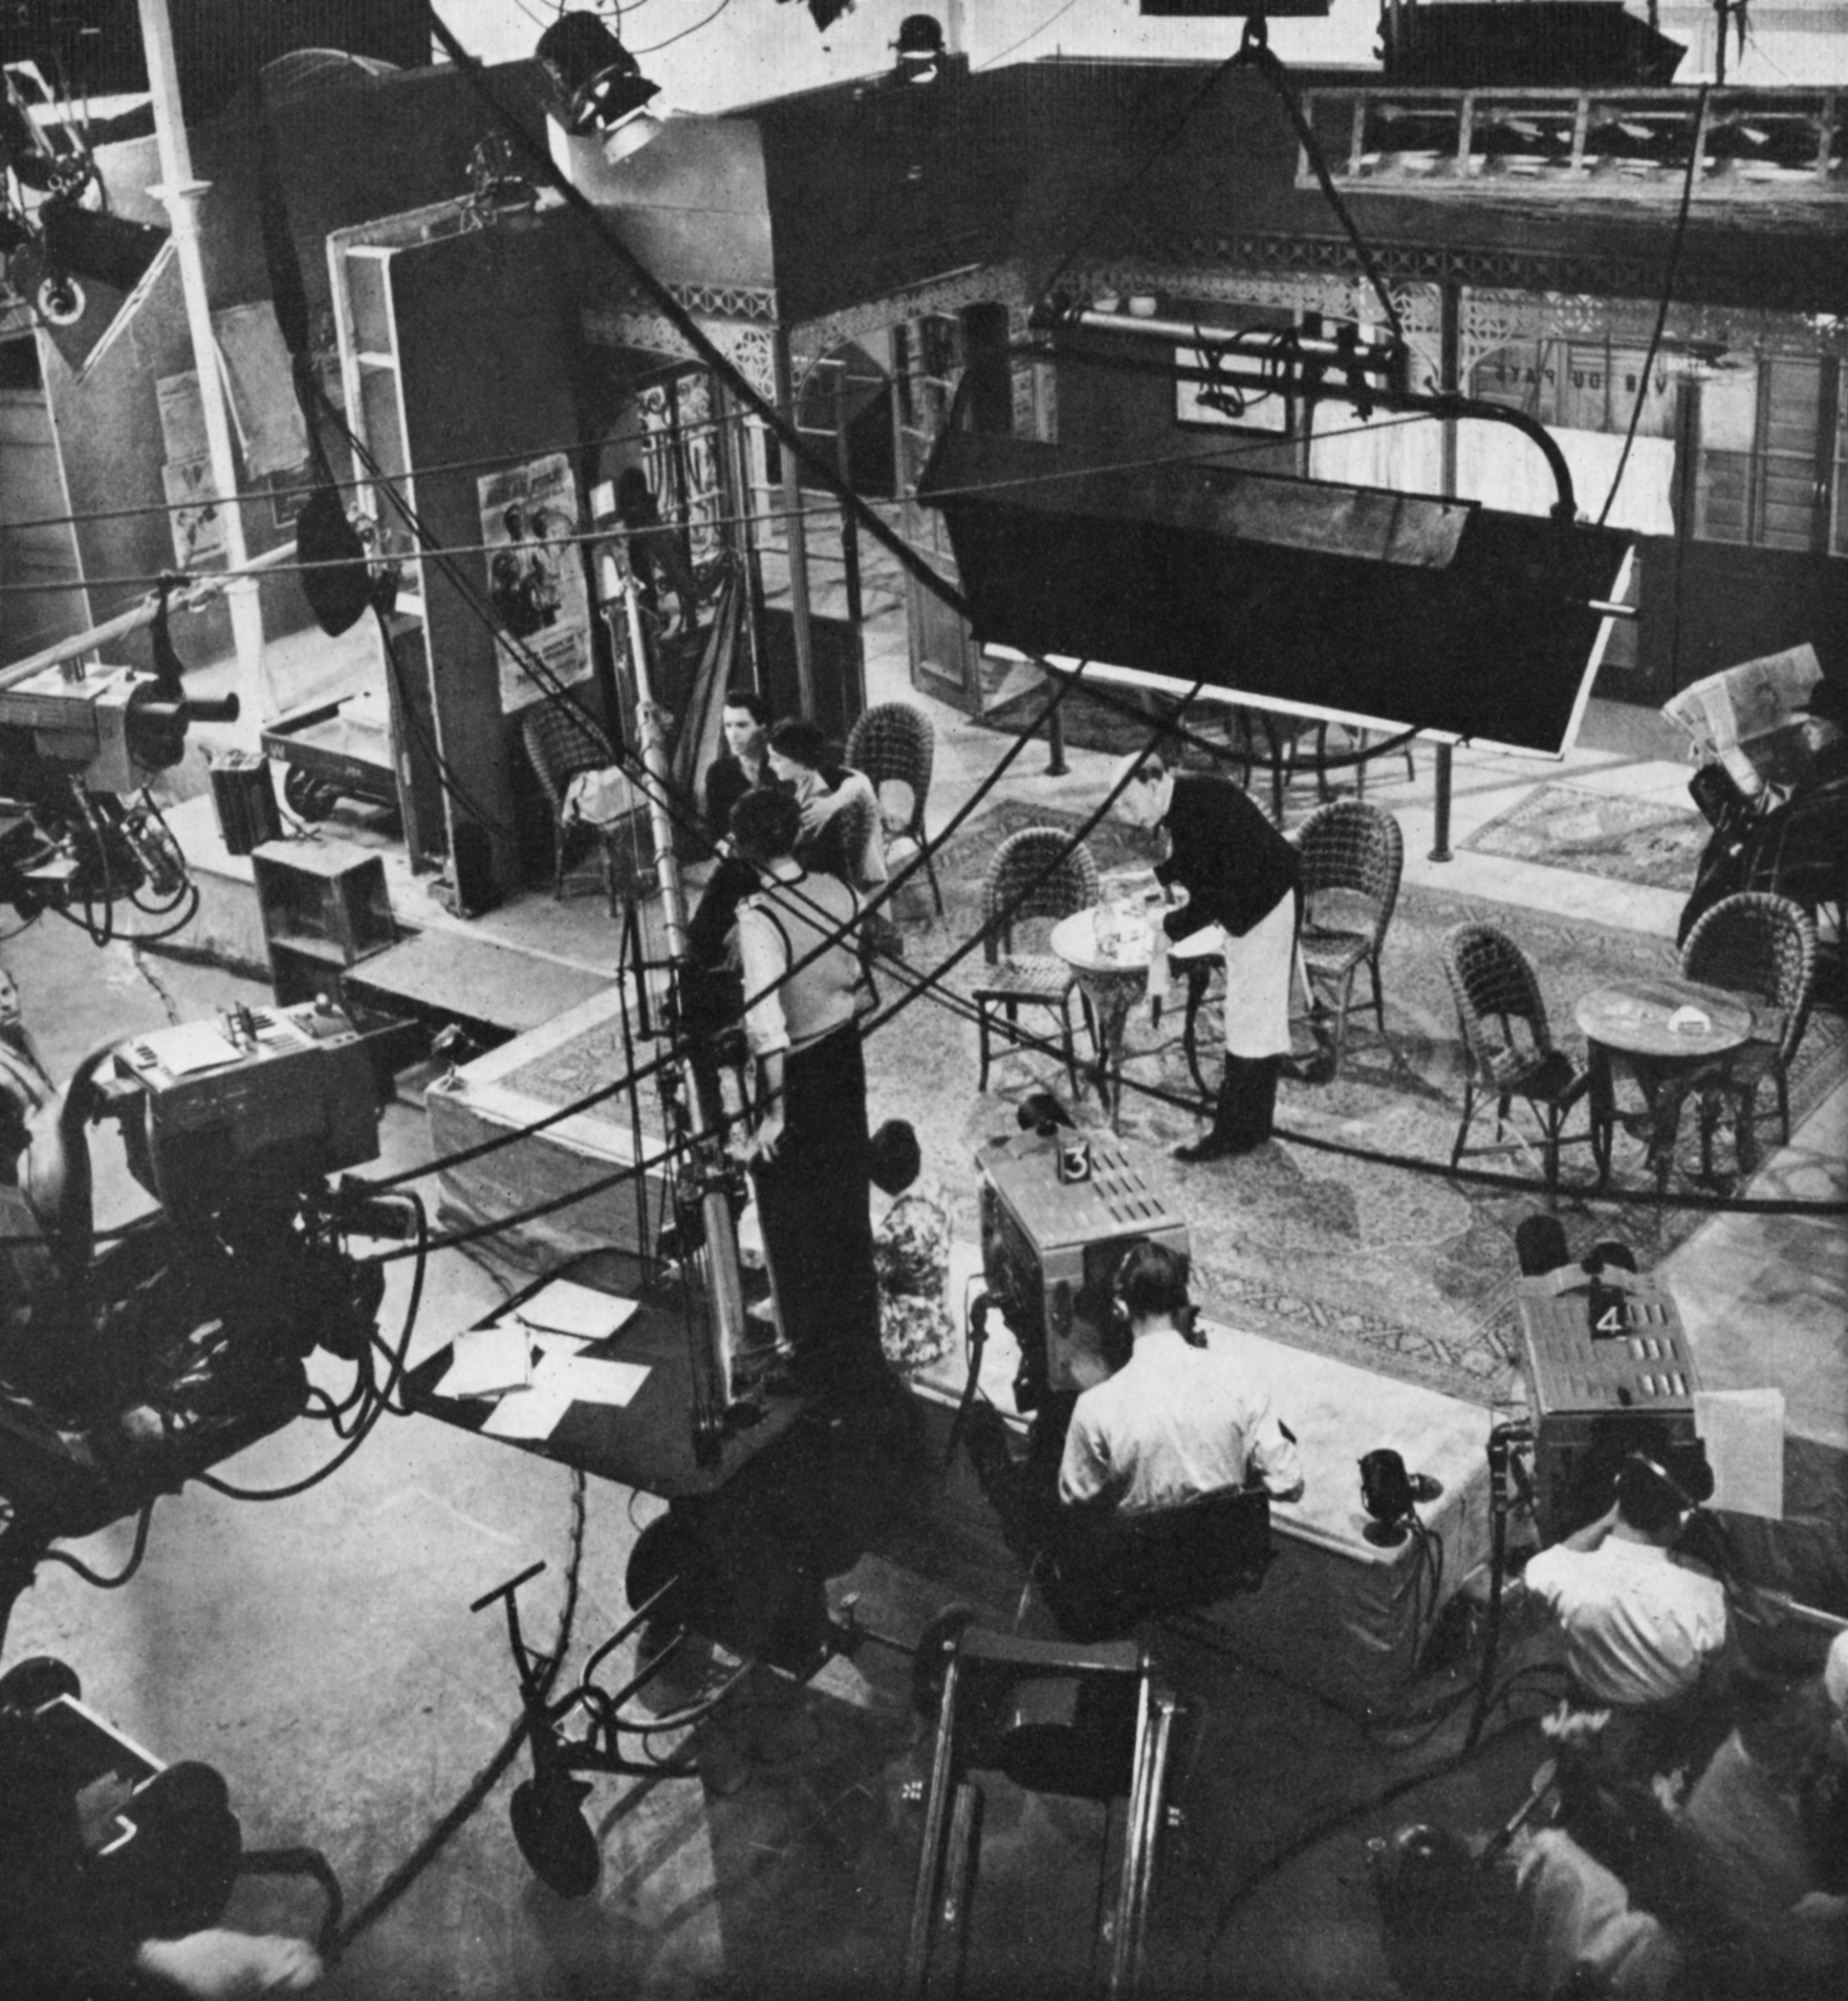 A view of the entire sound stage.